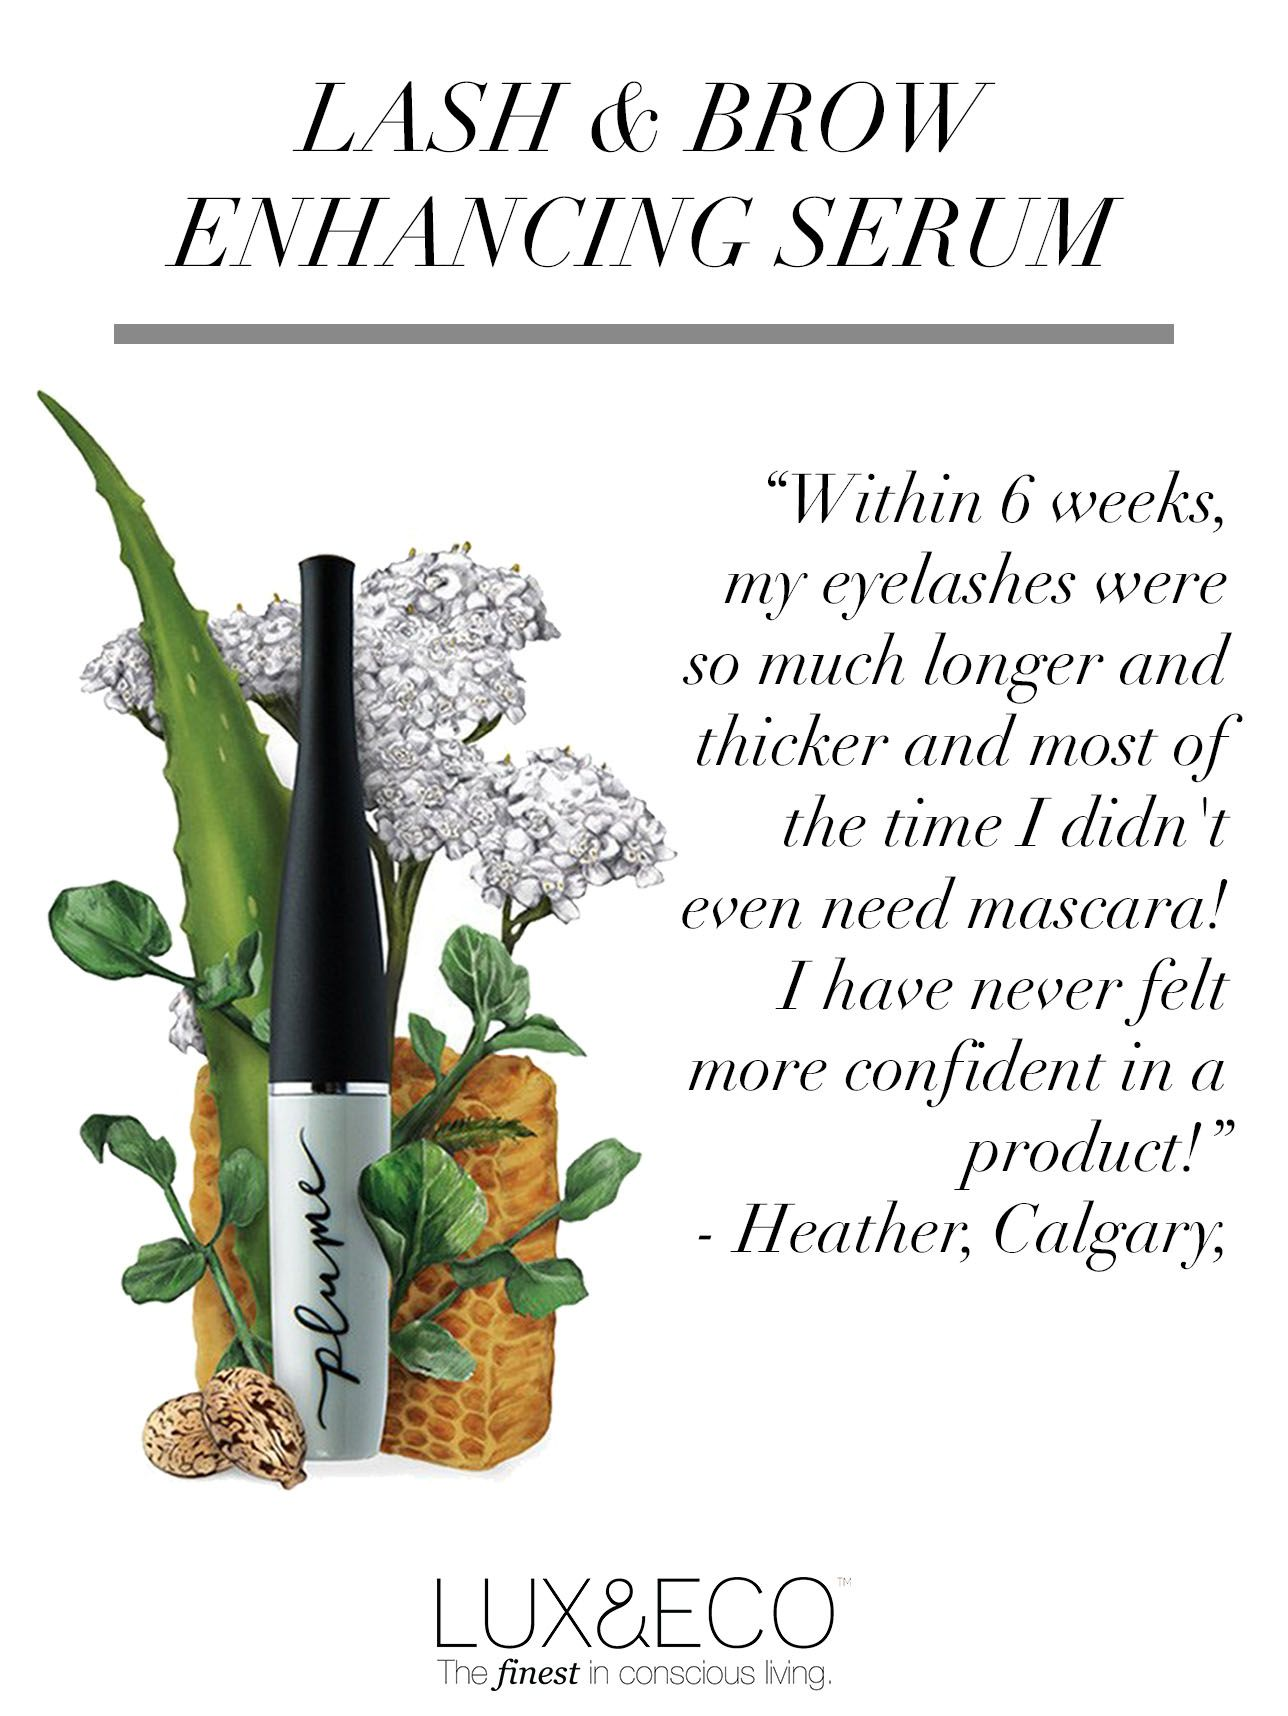 Formulated with all-natural, organic ingredients like organic castor oil, honey extract and aloe vera, this serum is designed to lengthen and thicken your lashes and brows.